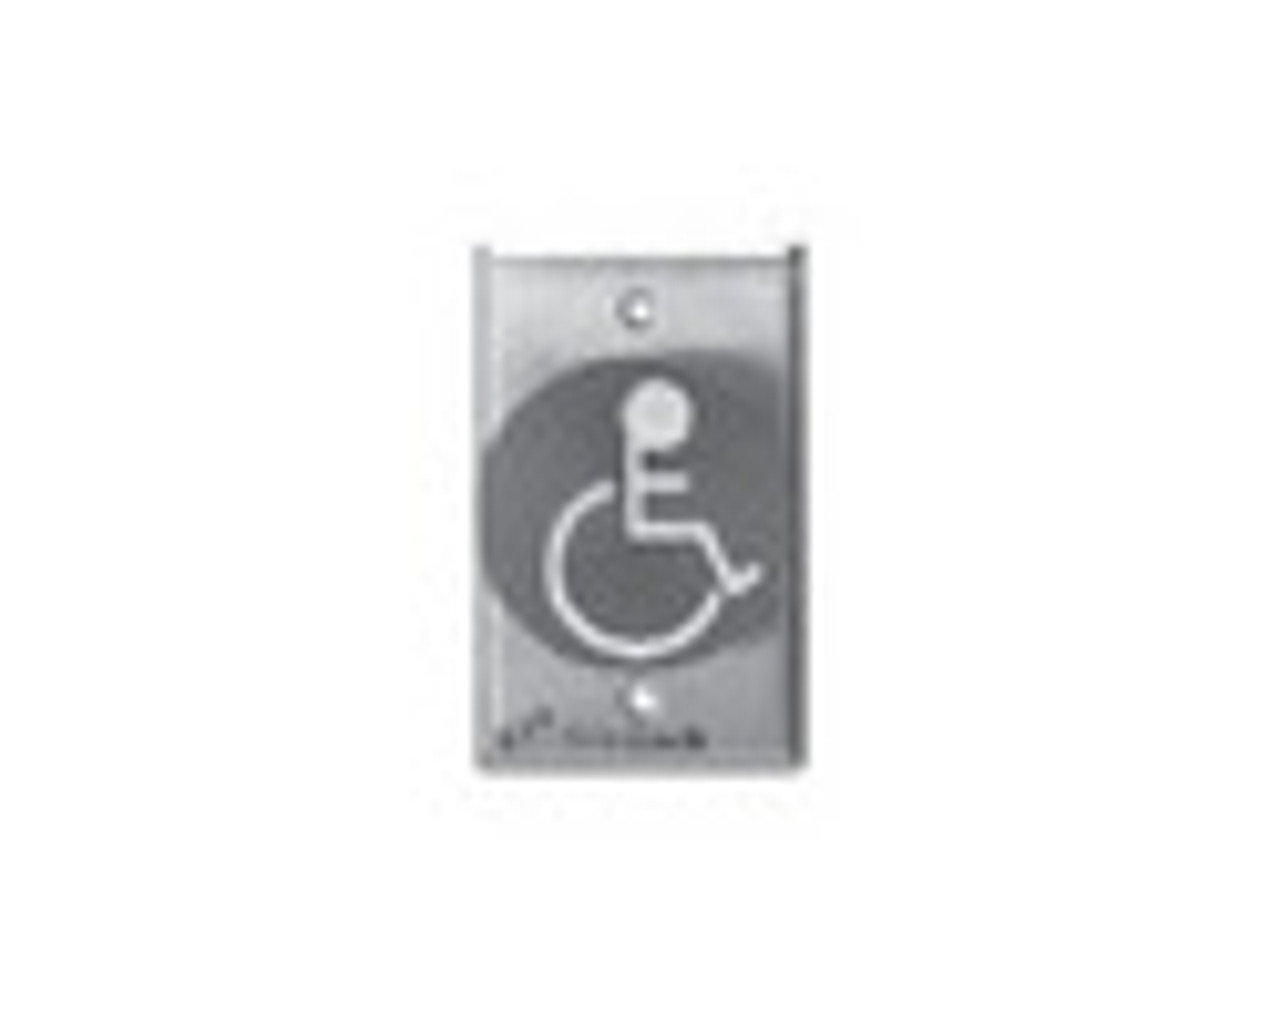 3002TJ32-US26-VOP2 DynaLock 3000 Series 1500 LBs Double Electromagnetic Lock for Inswing Door with Value Option Package in Bright Chrome